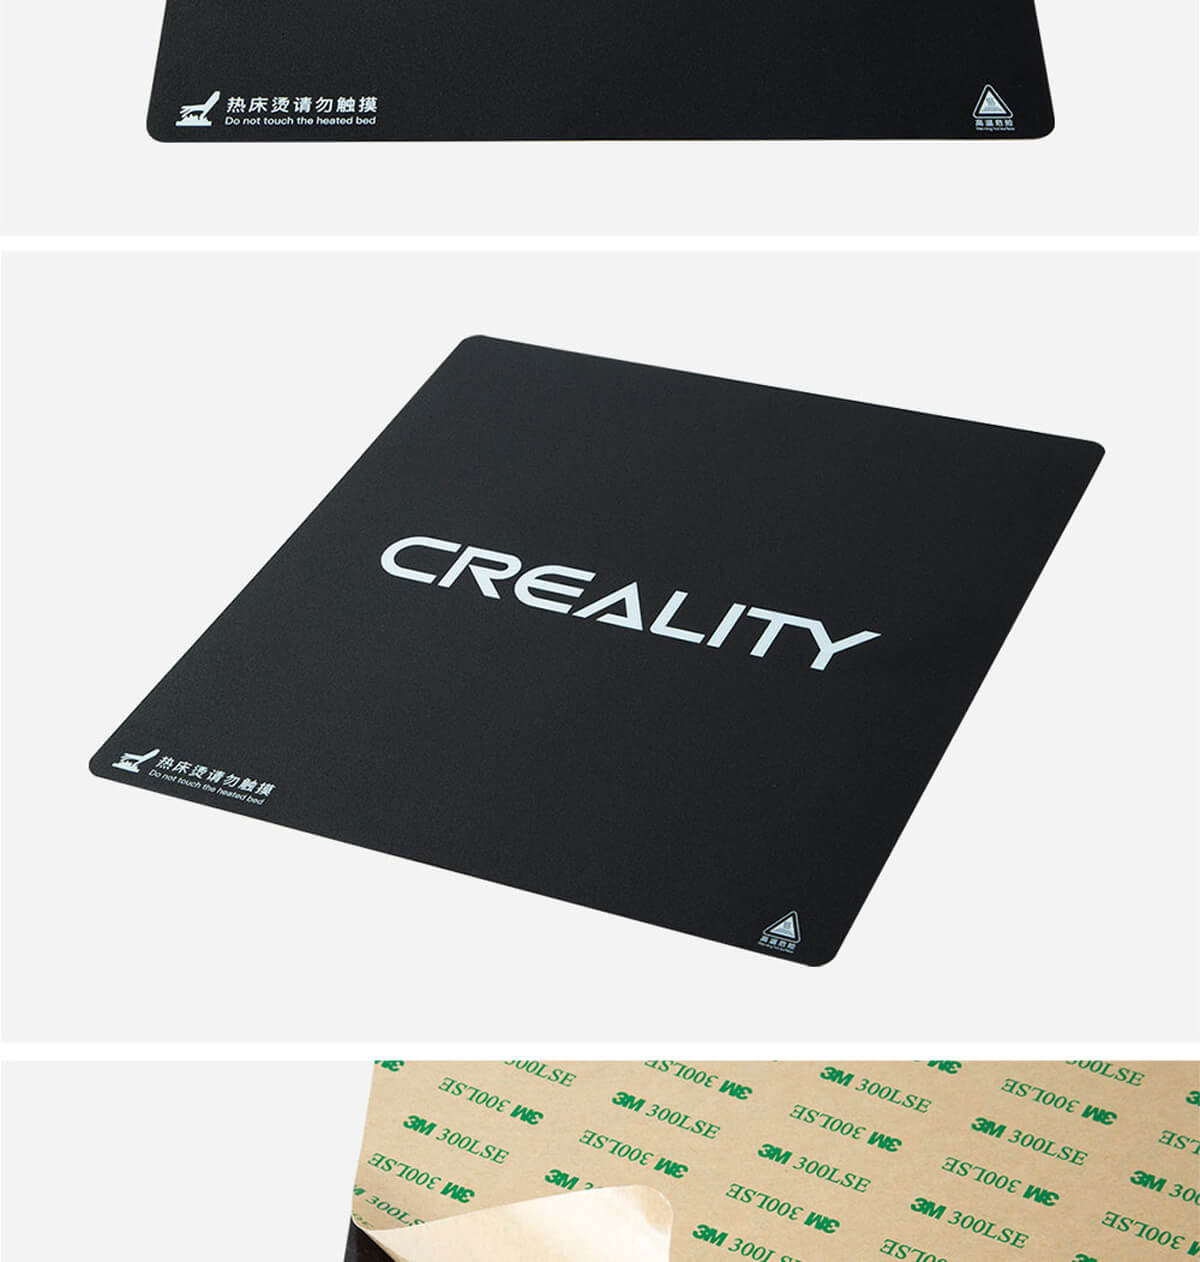 creality-3d-printer-cr-10-s4-platform-sticker-new-12